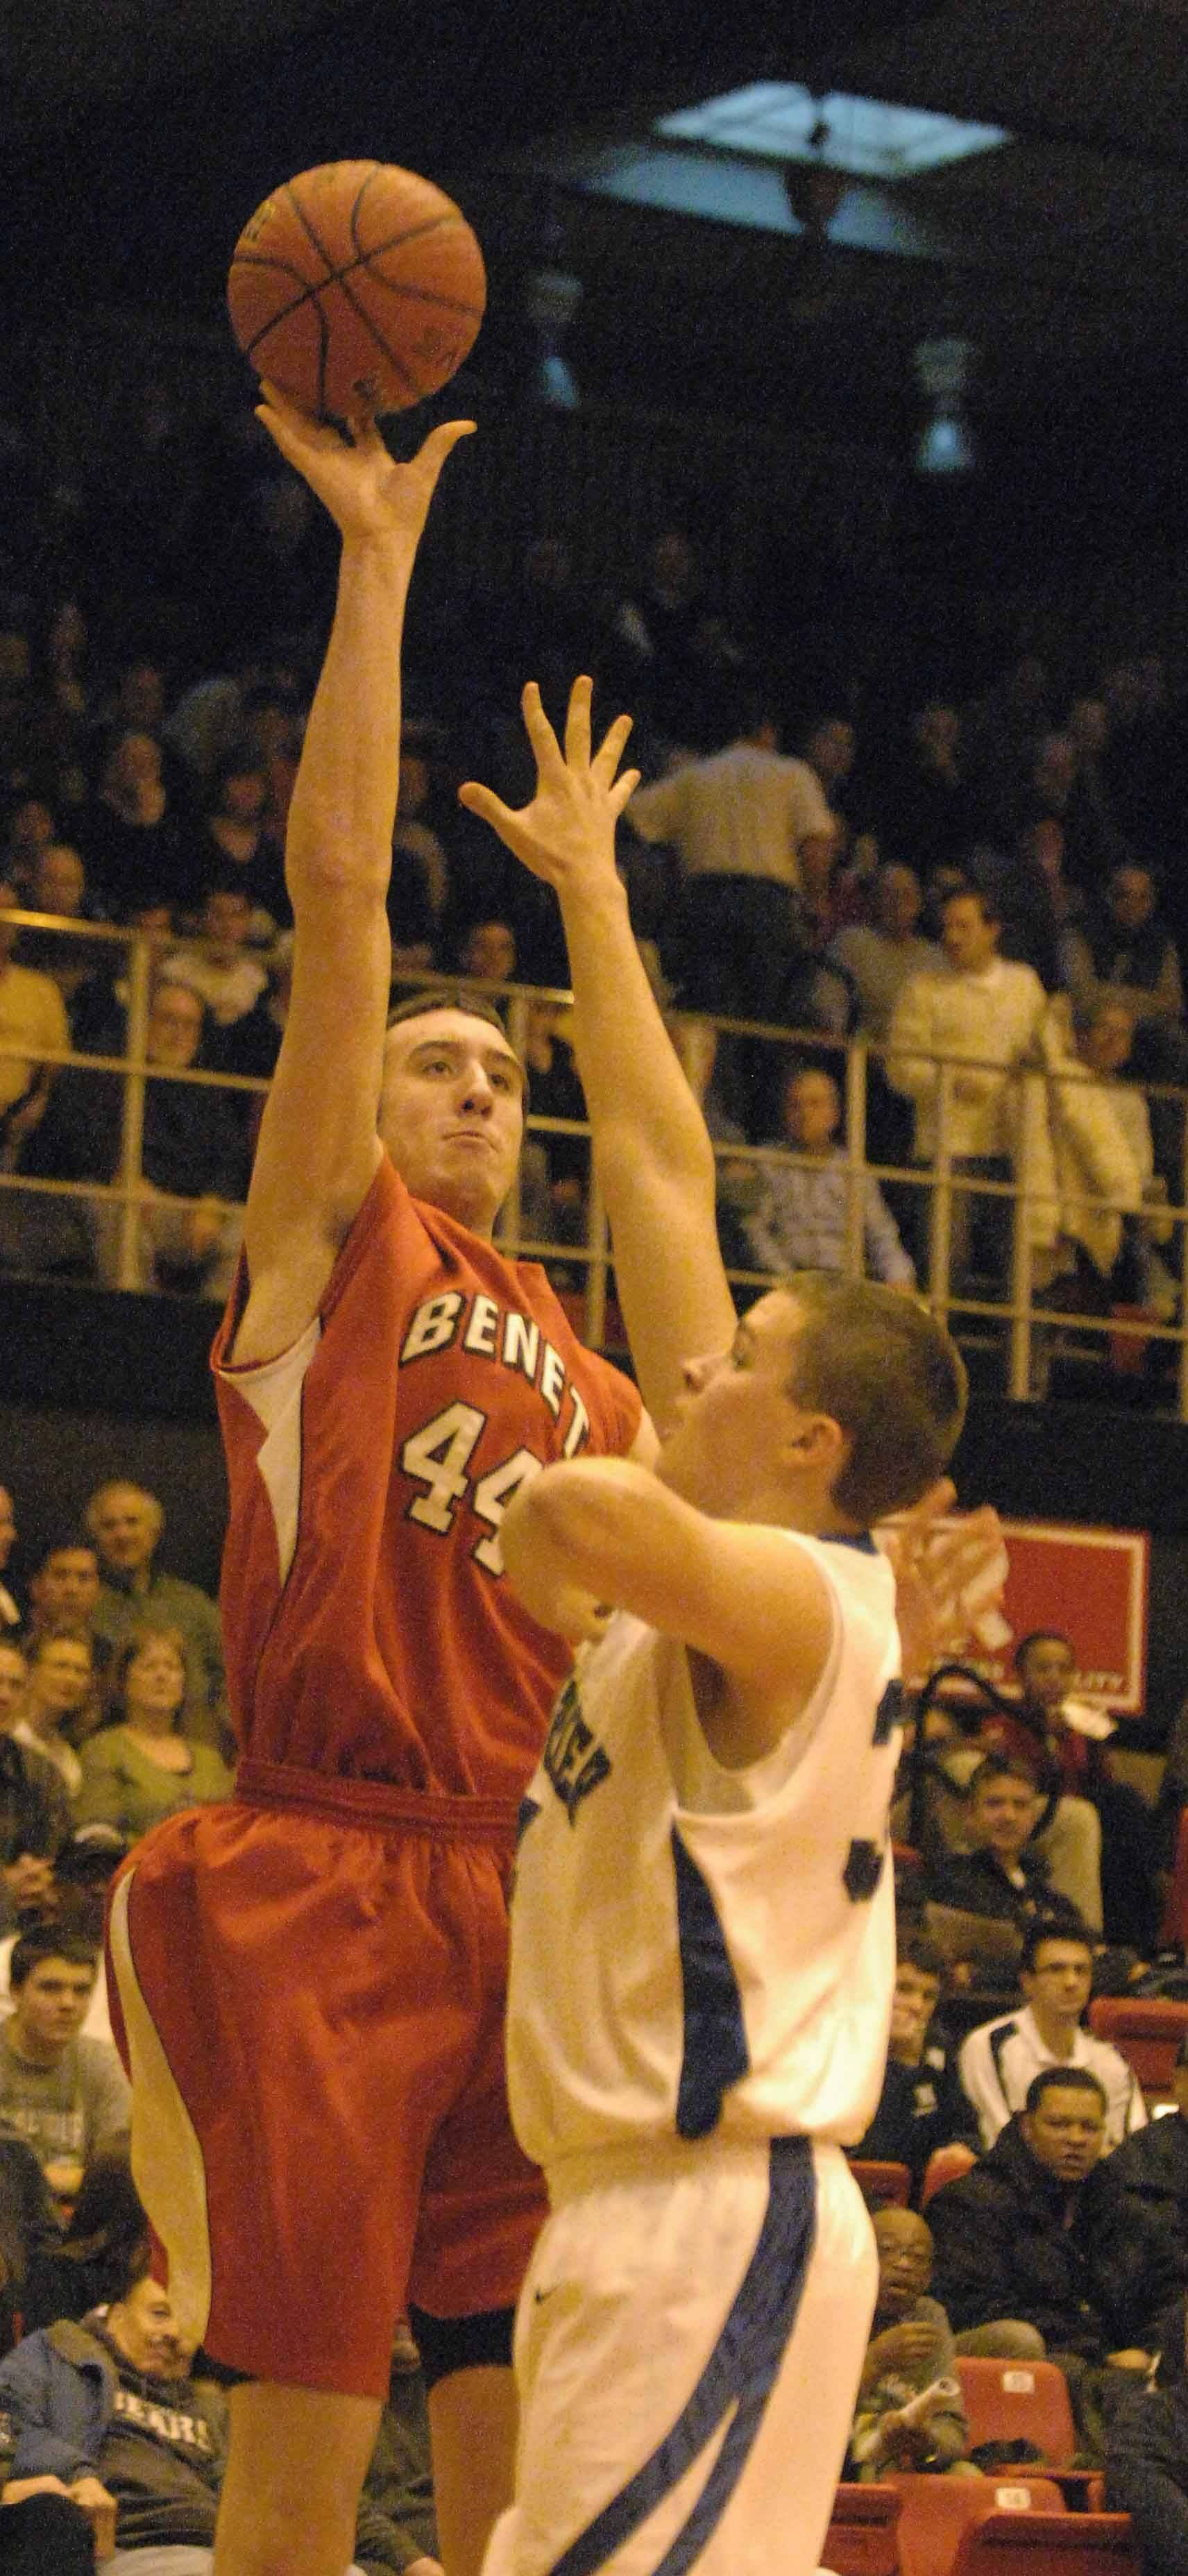 Frank Kaminsky of Benet takes a shot during the Benet vs. New Trier boys game at Proviso West Tuesday.